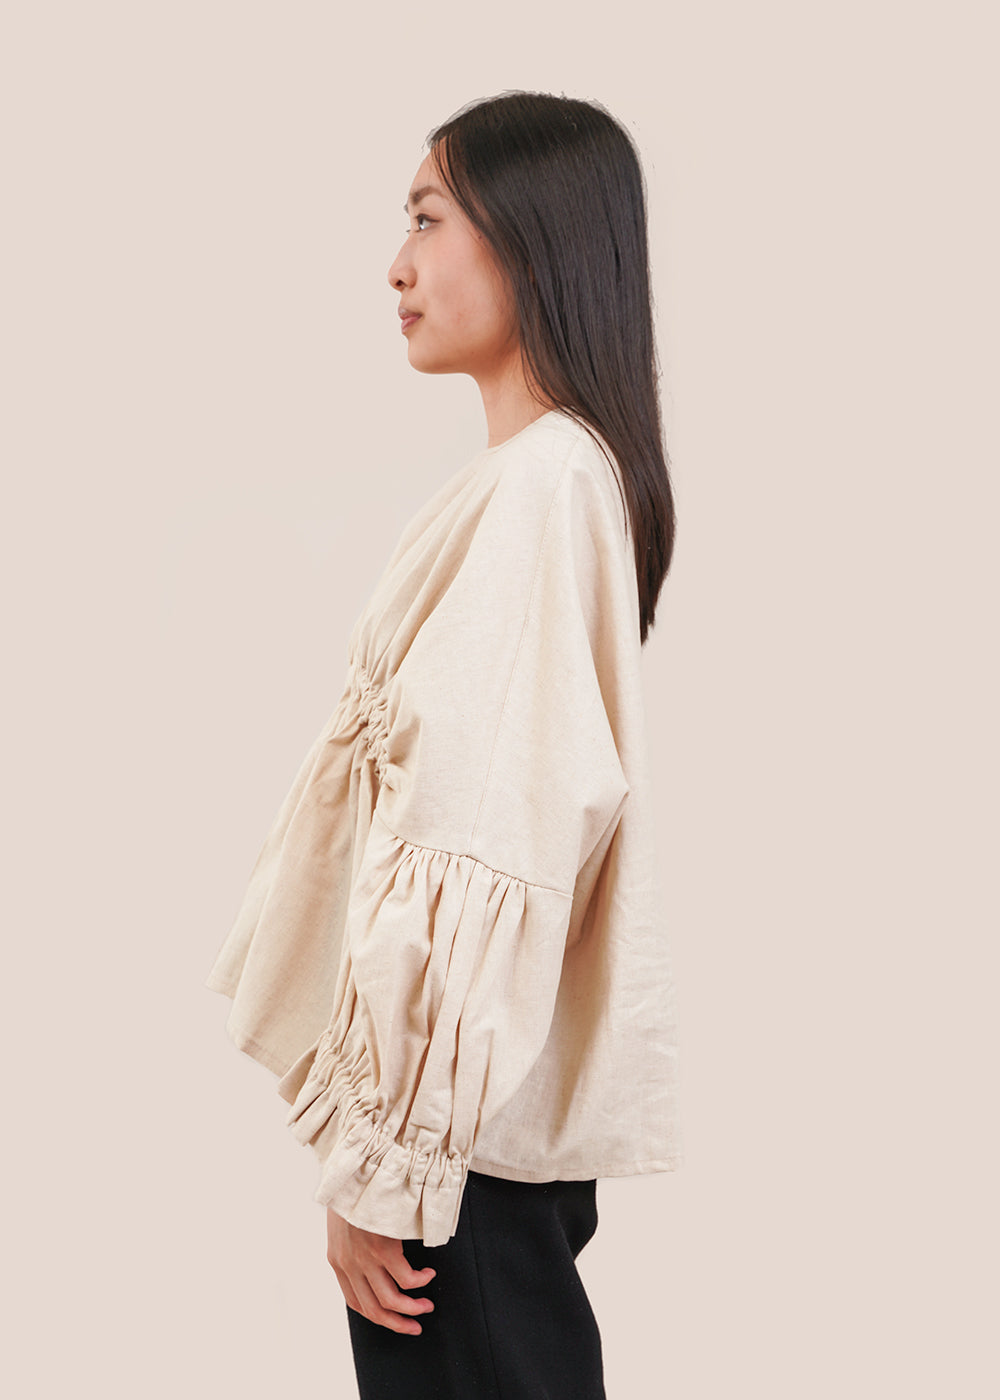 323 Vivian Top — Shop sustainable fashion and slow fashion at New Classics Studios